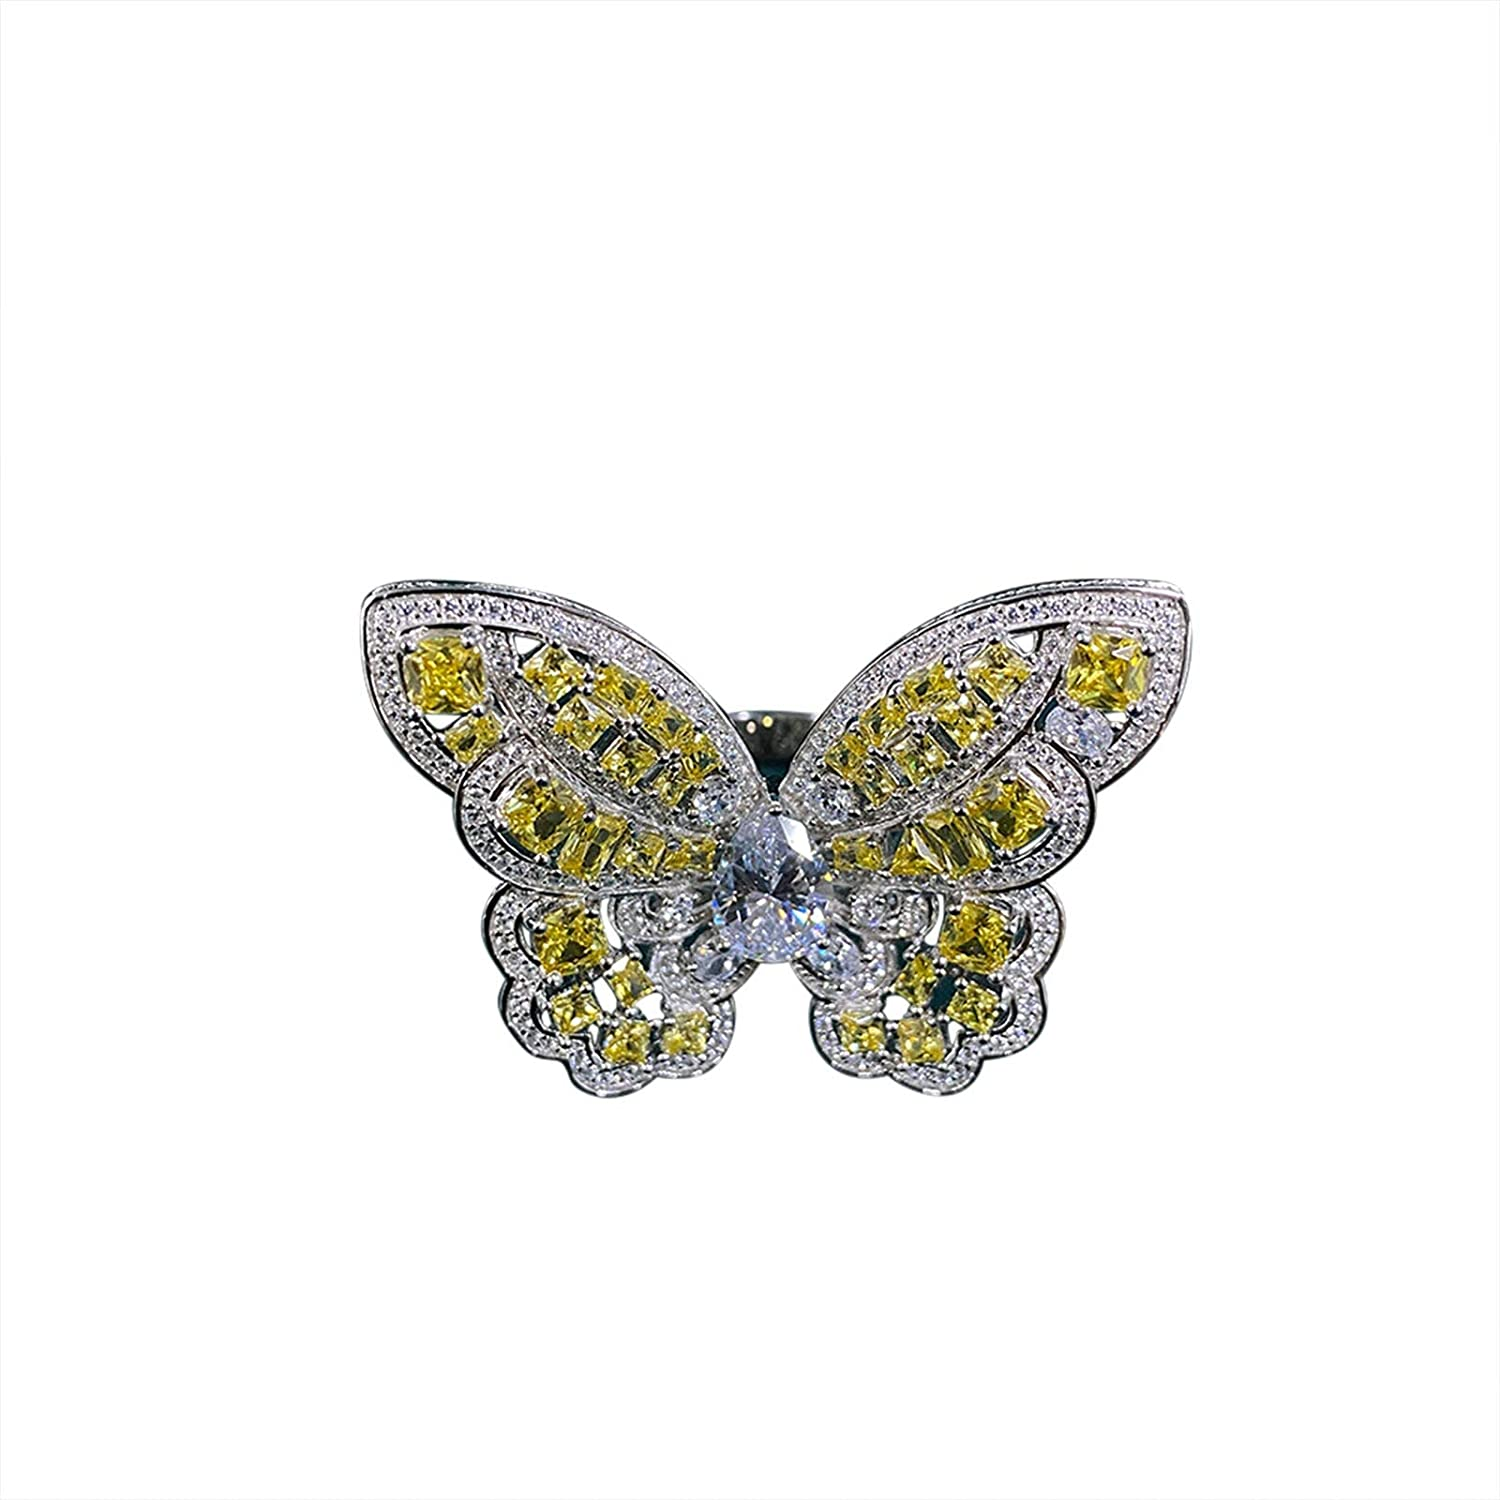 Beydodo Sterling Silver Wedding Rings Women, Engagement Rings for Women Diamond Butterfly Ring with Yellow and White Cubic Zirconia Size 5 to 9